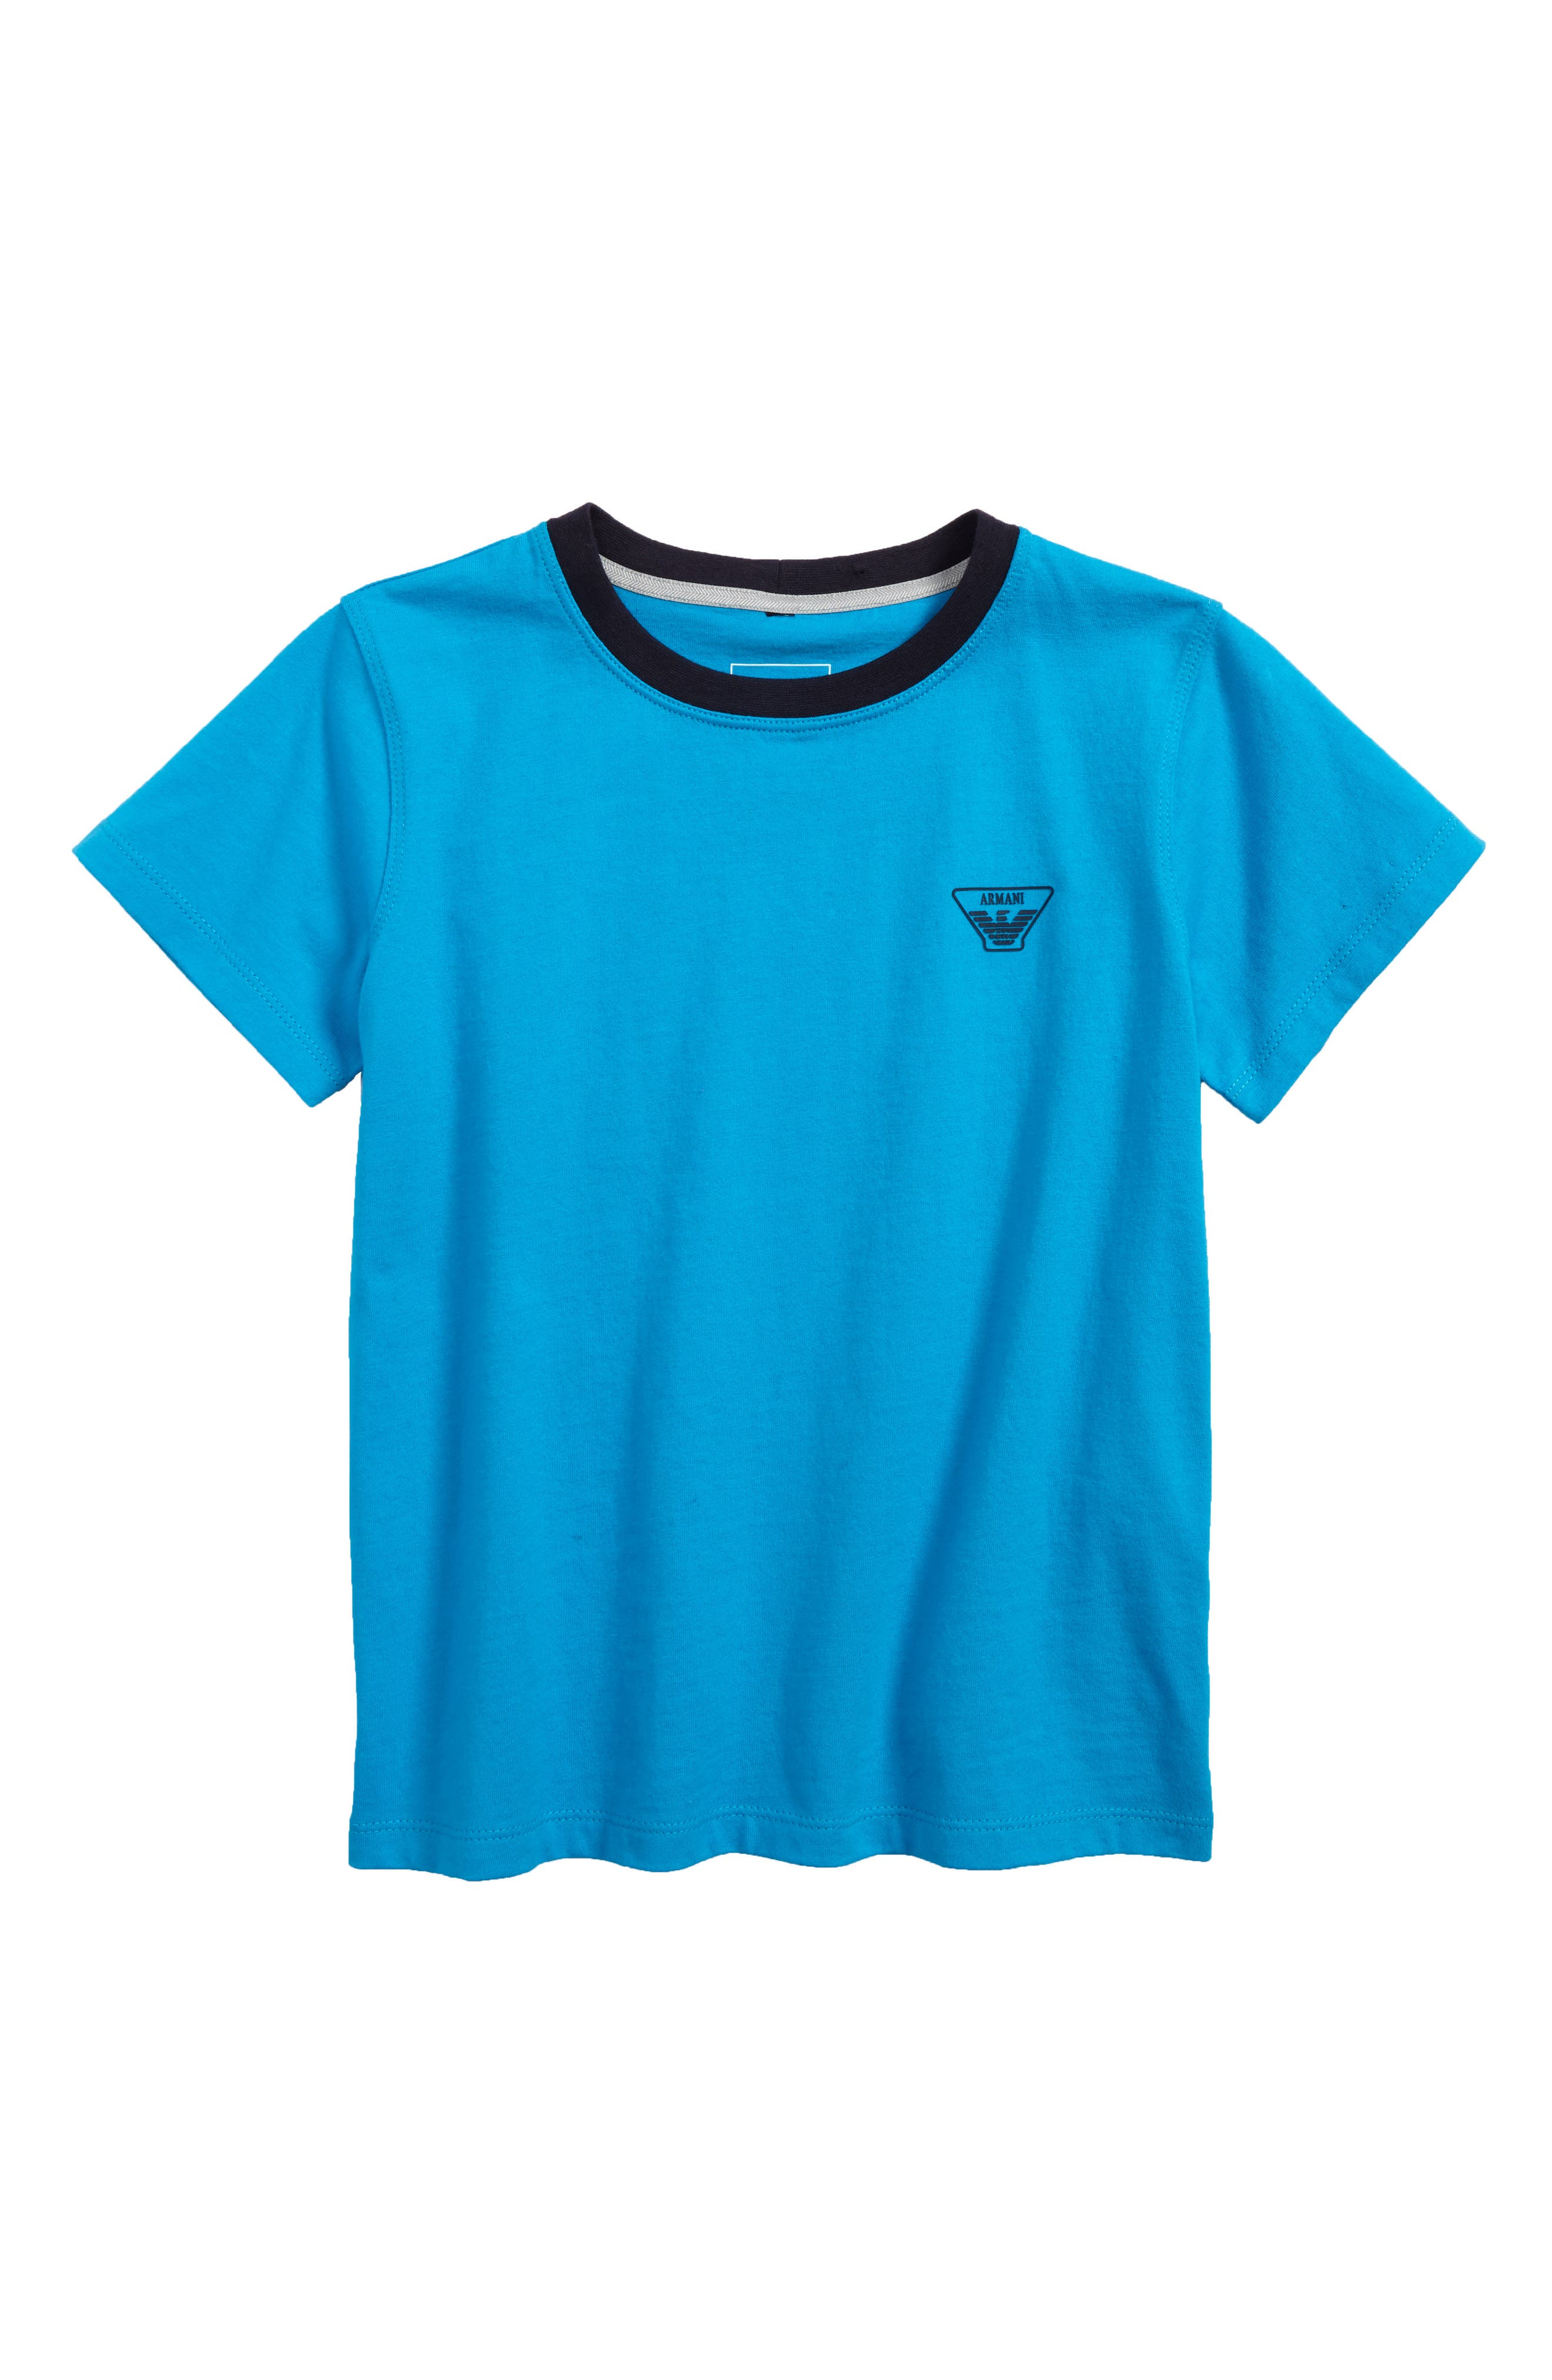 Logo T-Shirt,                         Main,                         color, Turquoise